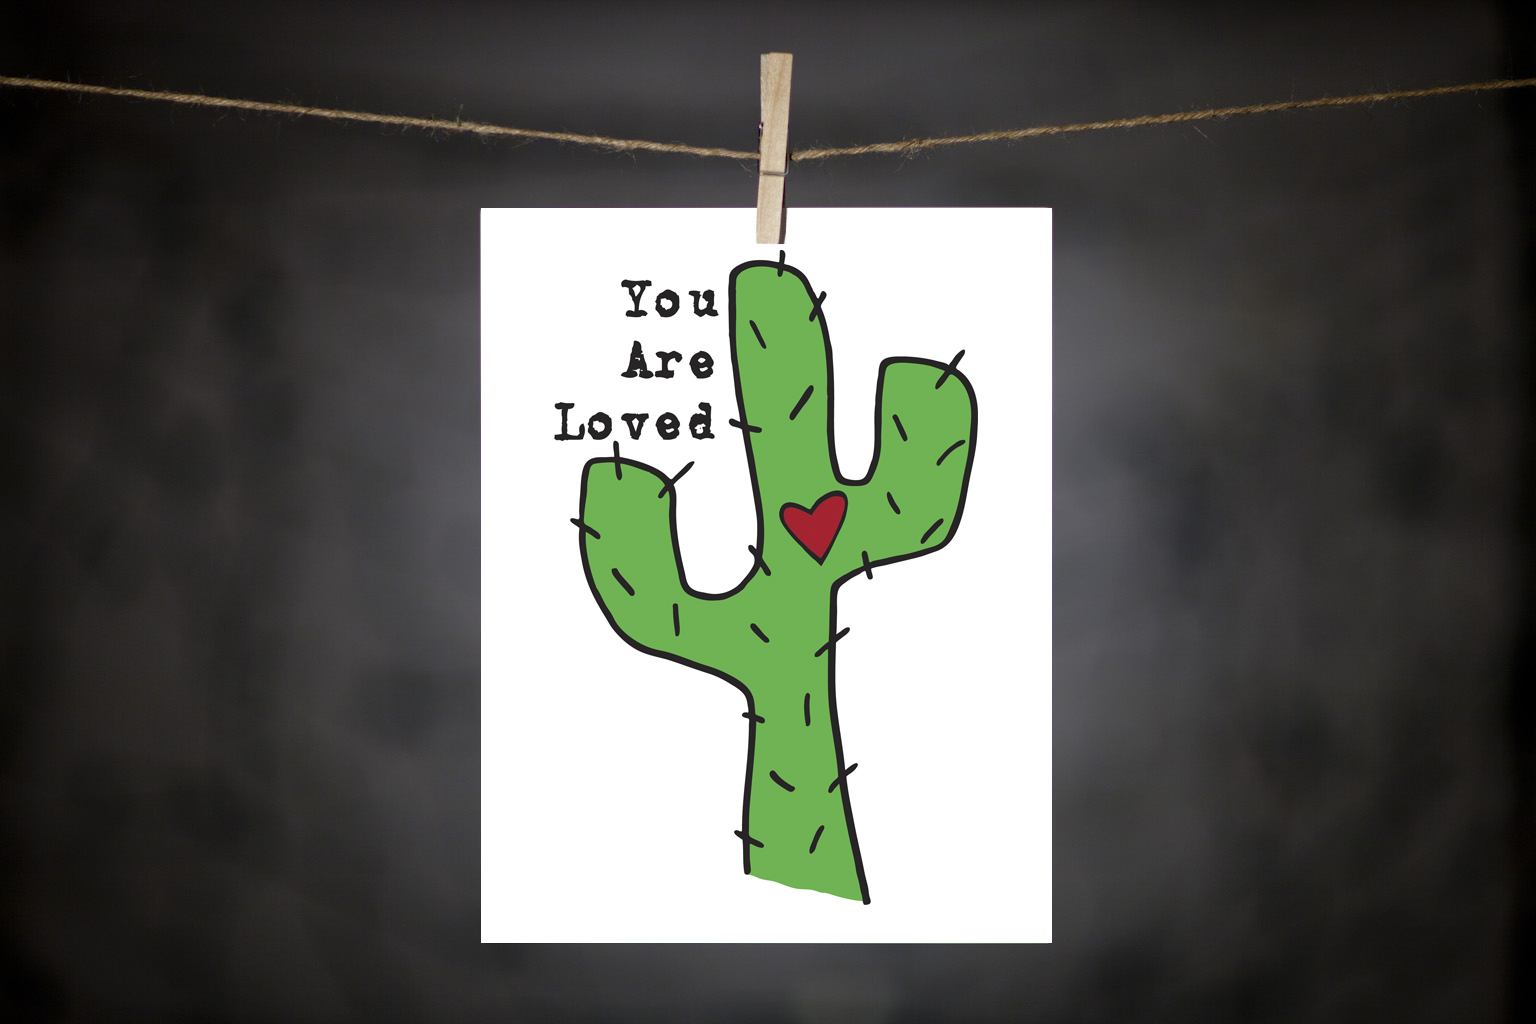 pURCHASE hEREwhether you're super sweet by nature or a little rough around the edges, remember... prickly hearts need love too.perhaps you could use a little reminder yourself or maybe you want to remind someone else just what they mean  to this world.  buy it // frame it // love it.keep it for yourself or gift it to someone super.  either way, this festive 8x10{quote} DoodleGirl original is sure to add a little flare to any space.  it comes packaged in a cellophane sleeve with a cardboard backing.  crafted + printed in colorado, usa.